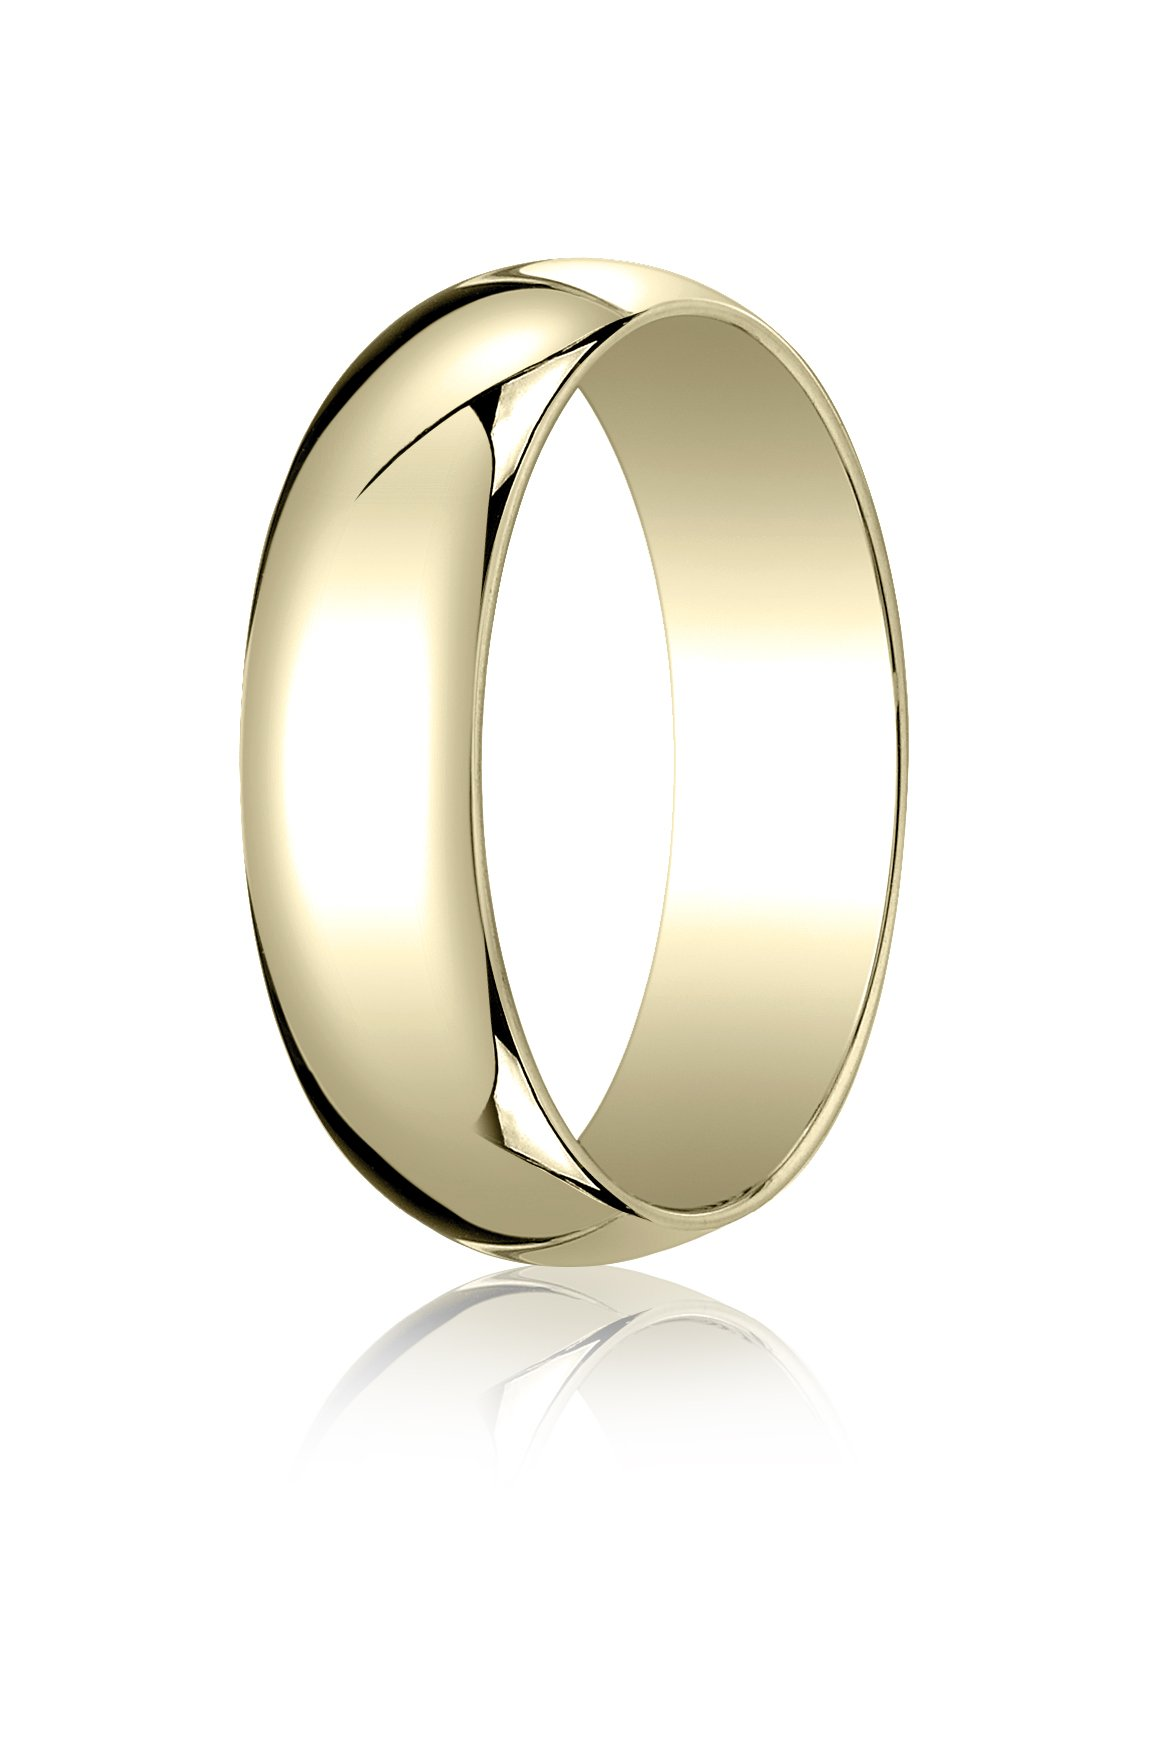 Mens 14K Yellow Gold, 6.0mm Traditional Dome Oval Ring (sz 12)